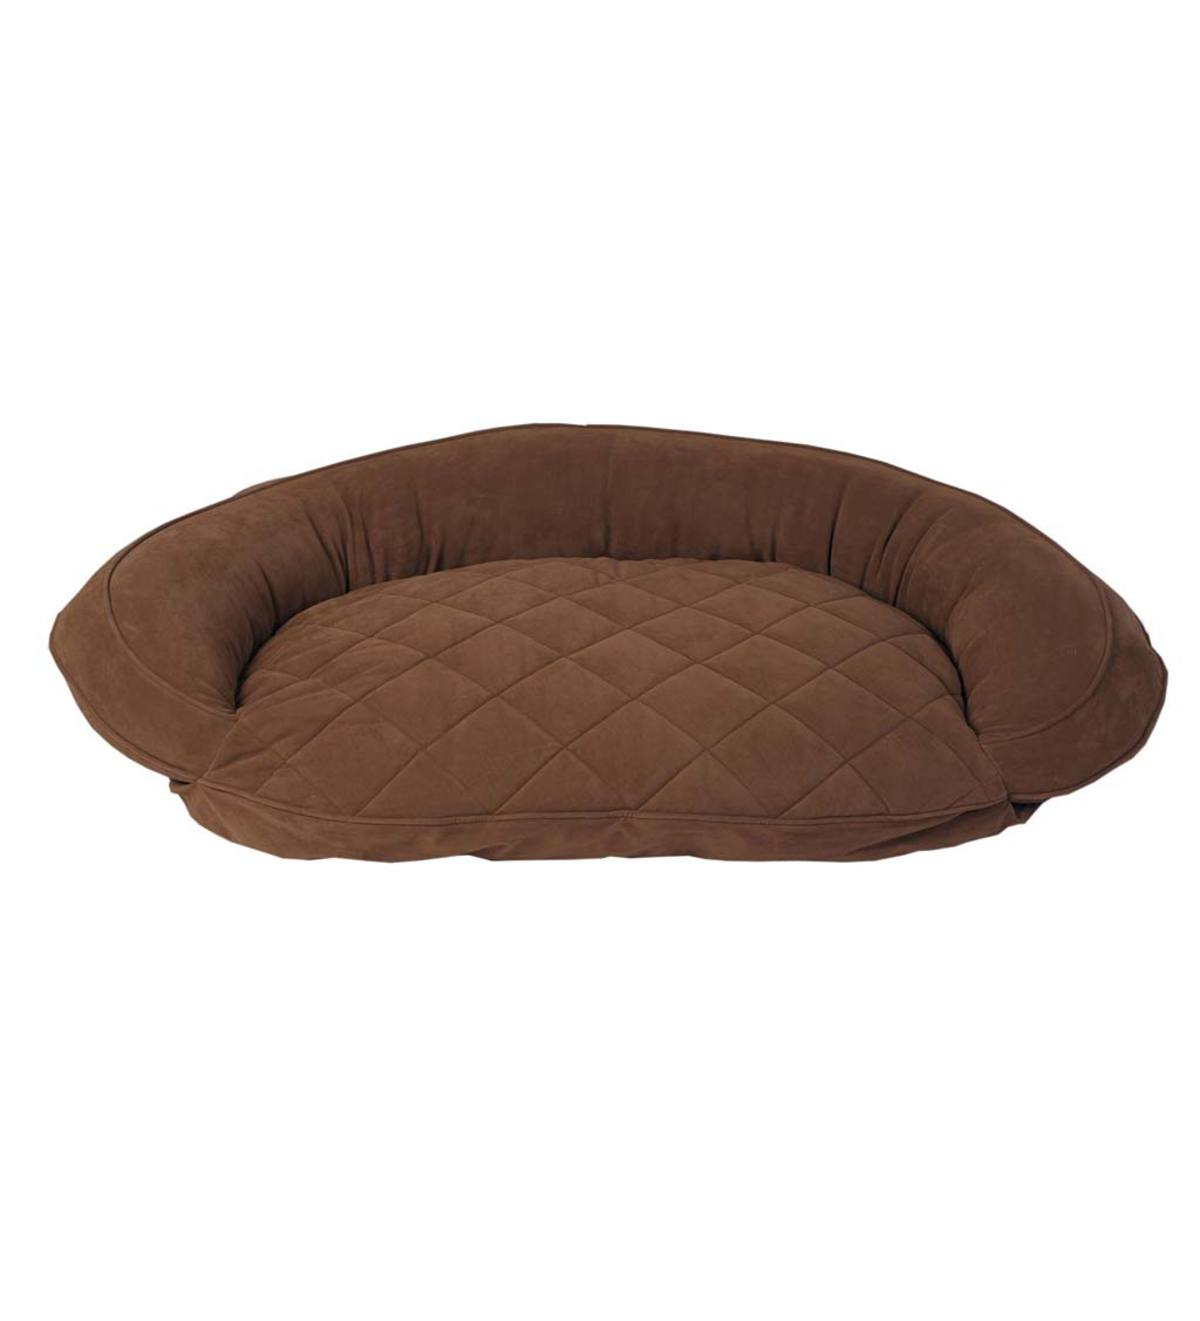 Microfiber Bolster Pet Bed, X-Large - Chocolate